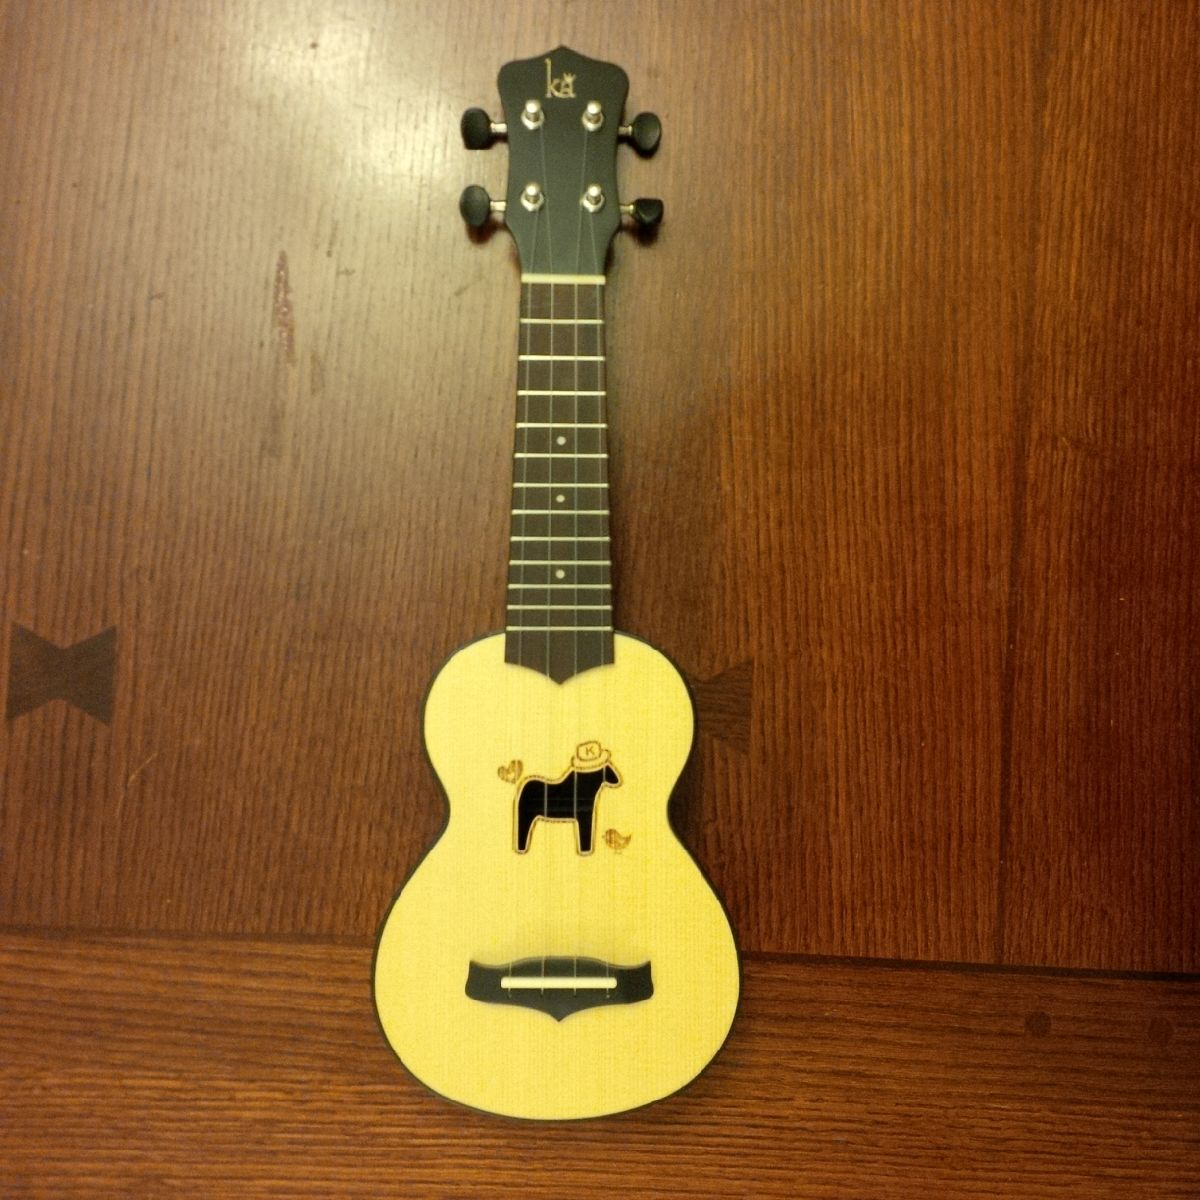 Mini ukulele for children